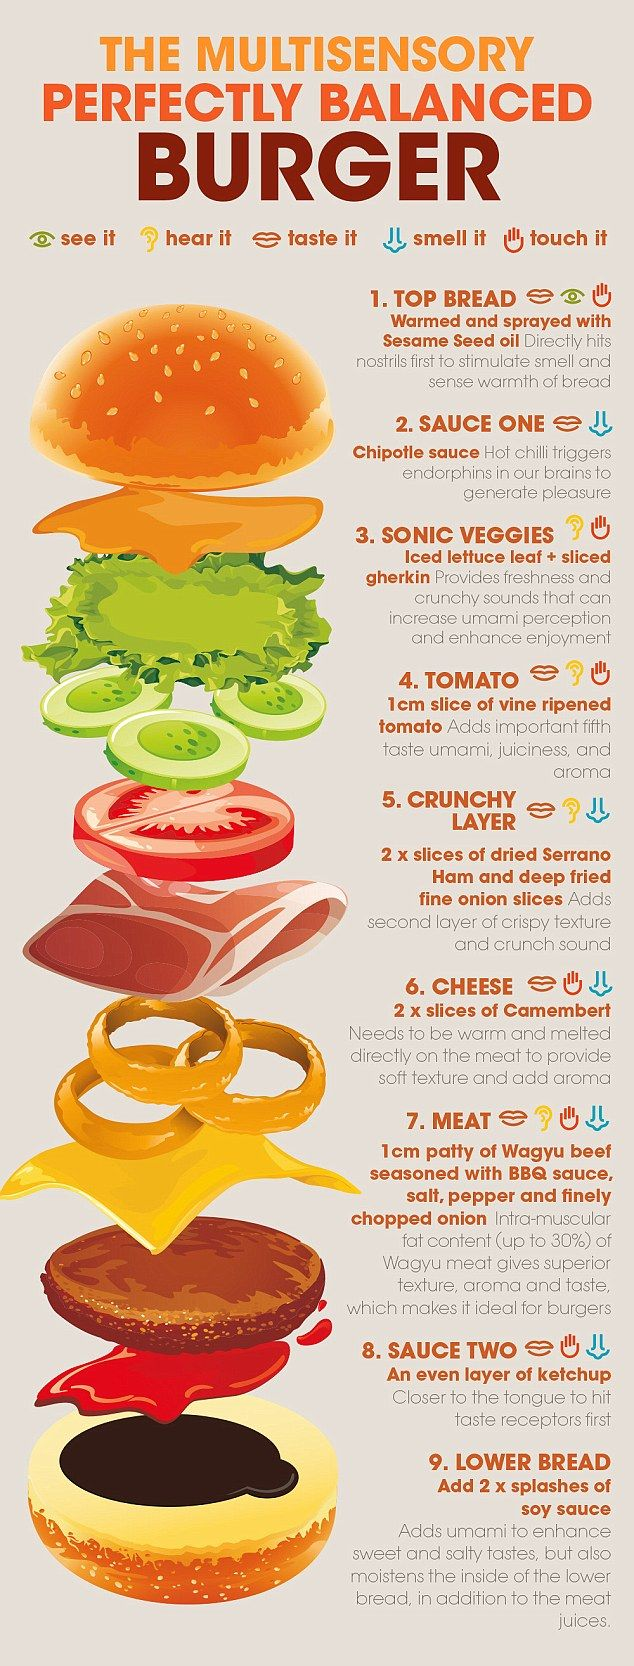 The entire burger contains eight important components, including a seeded burger bread, Chipotle sauce, vegetables - including a lettuce leaf and sliced gherkin, a slice of tomato, a crunchy layer of dried Serrano Ham and deep fried onion slices, slices of Camembert, Wagyu beef, ketchup and soy sauce